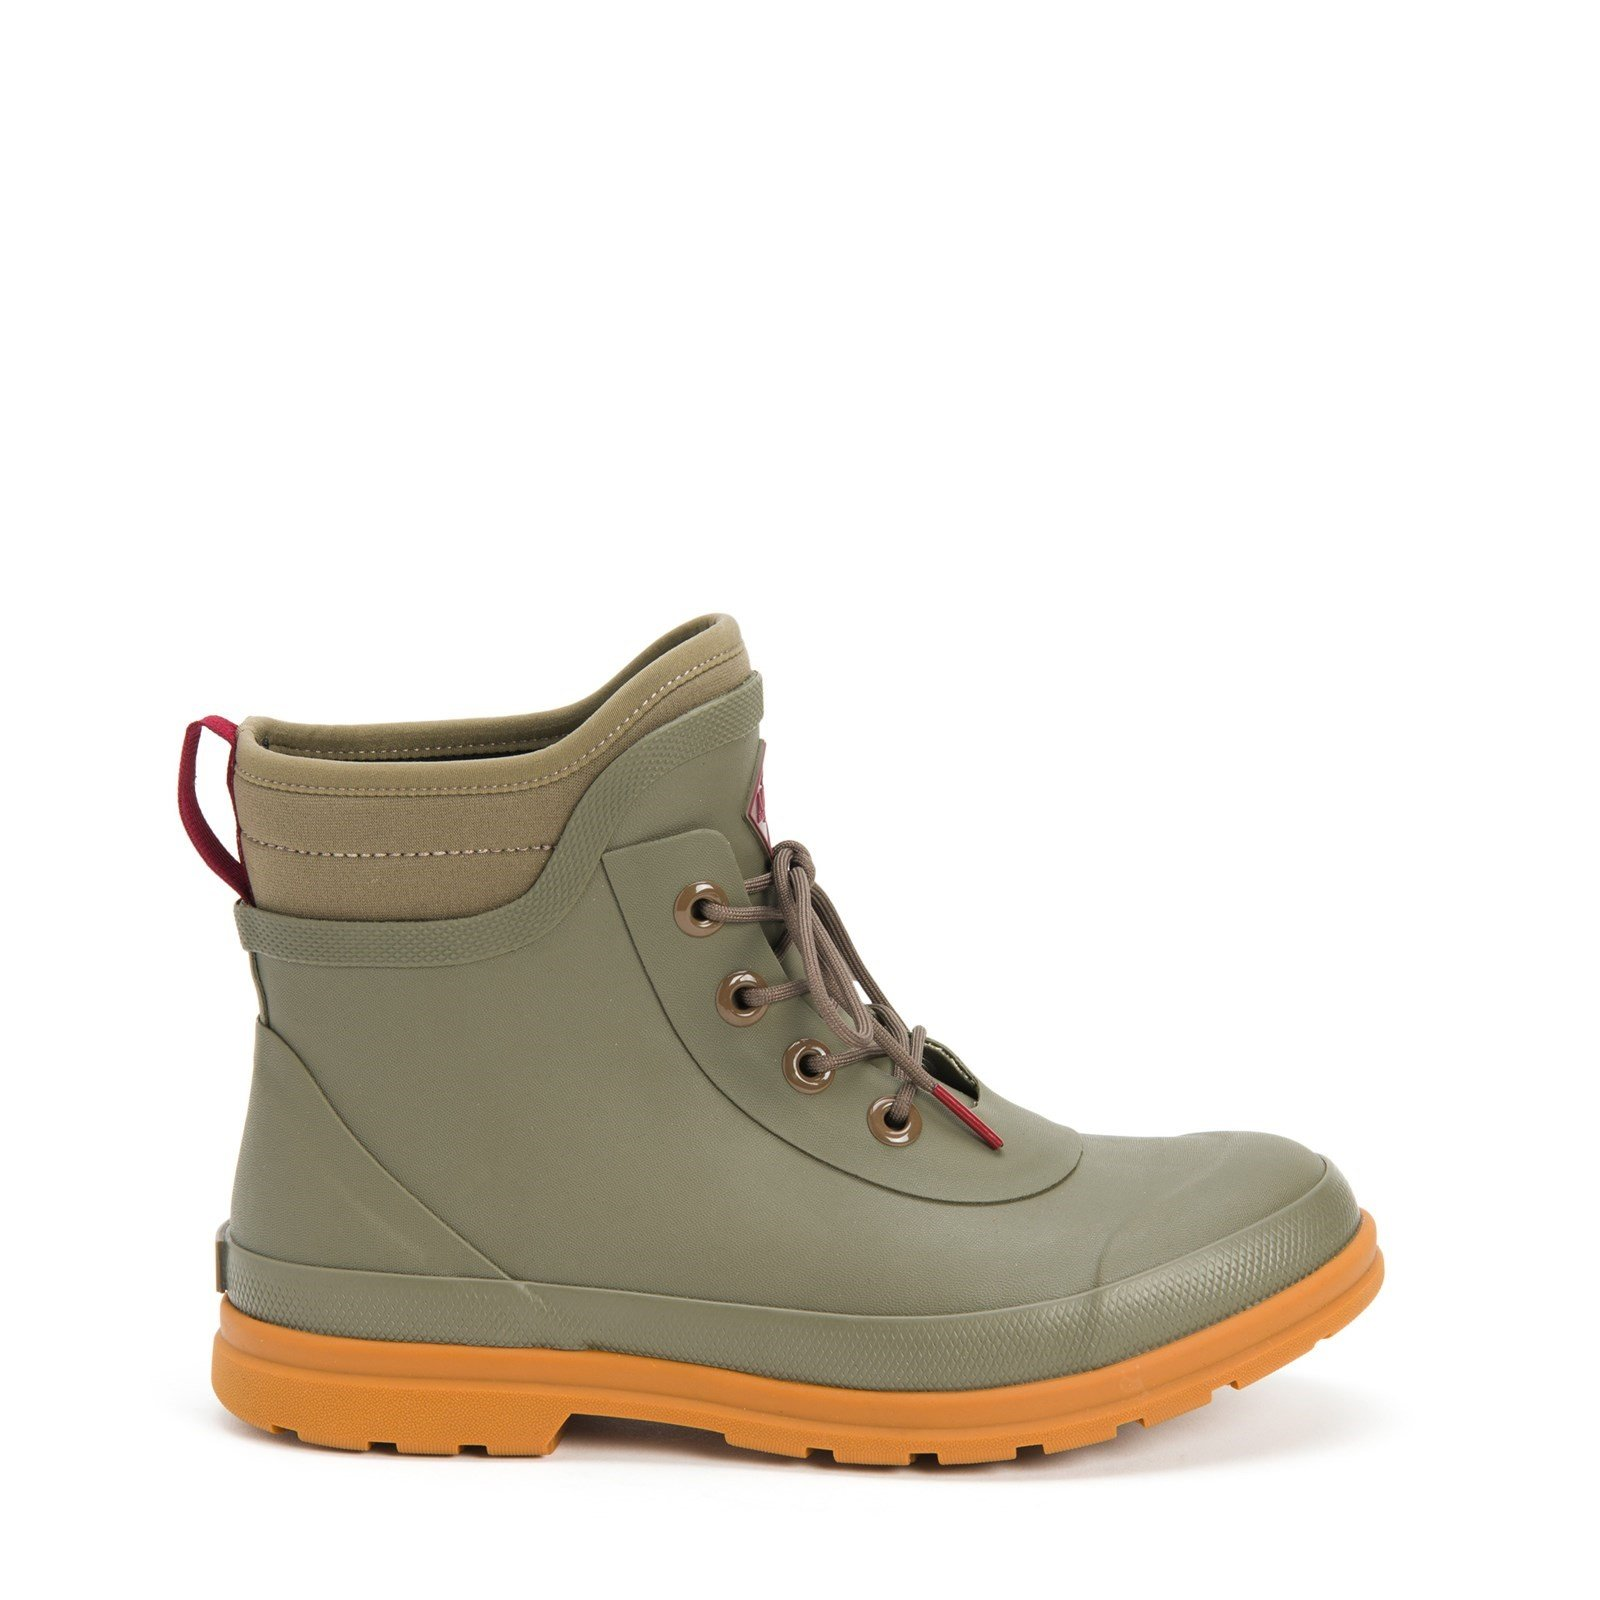 Muck Boots Women's Originals Lace Up Ankle Boot Various Colours 30079 - Taupe 9